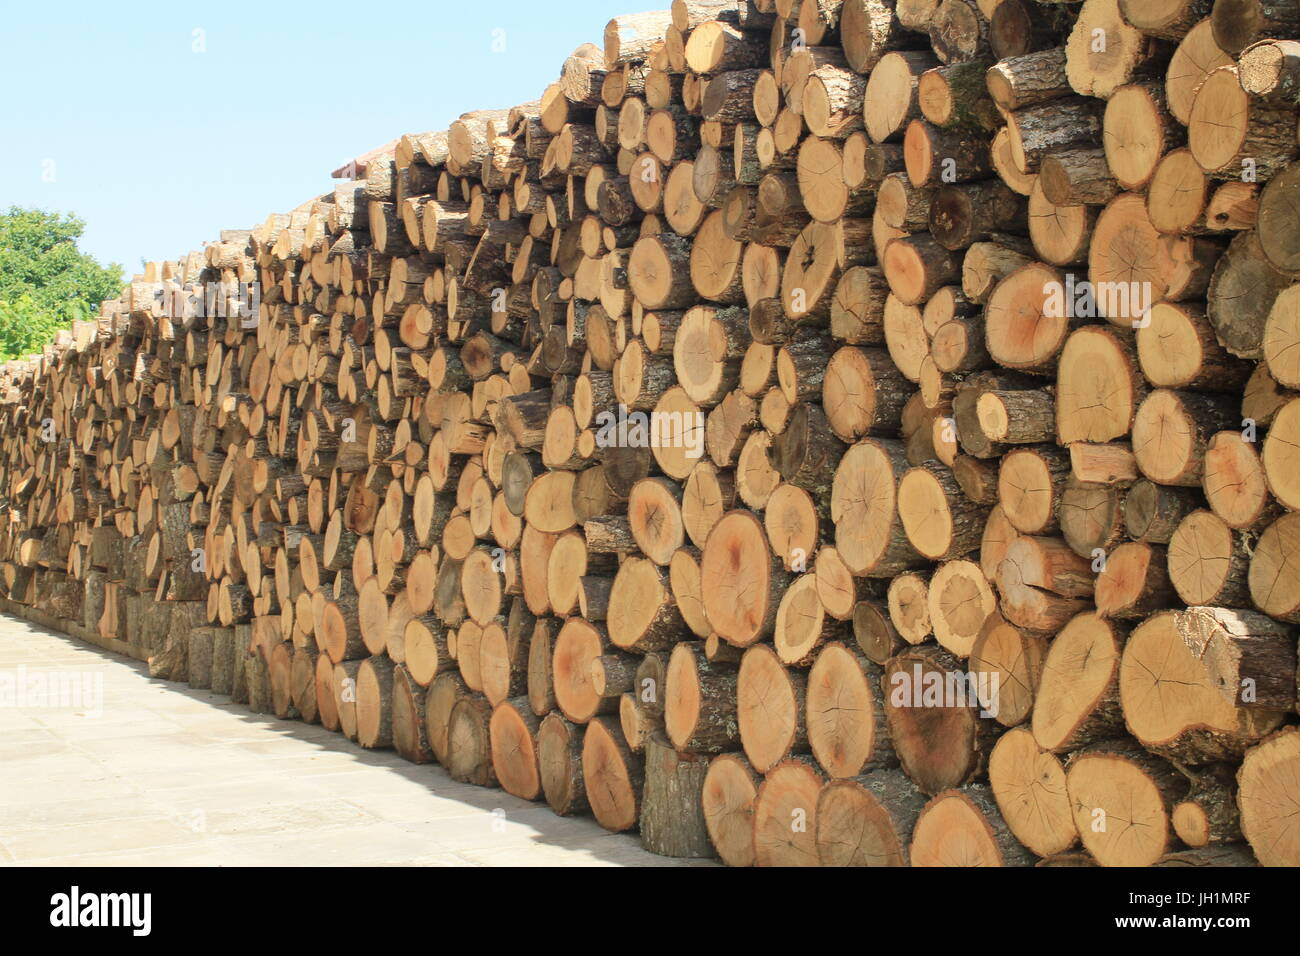 A firewood wall, logs piled high and long to dry in the sun. Stock Photo